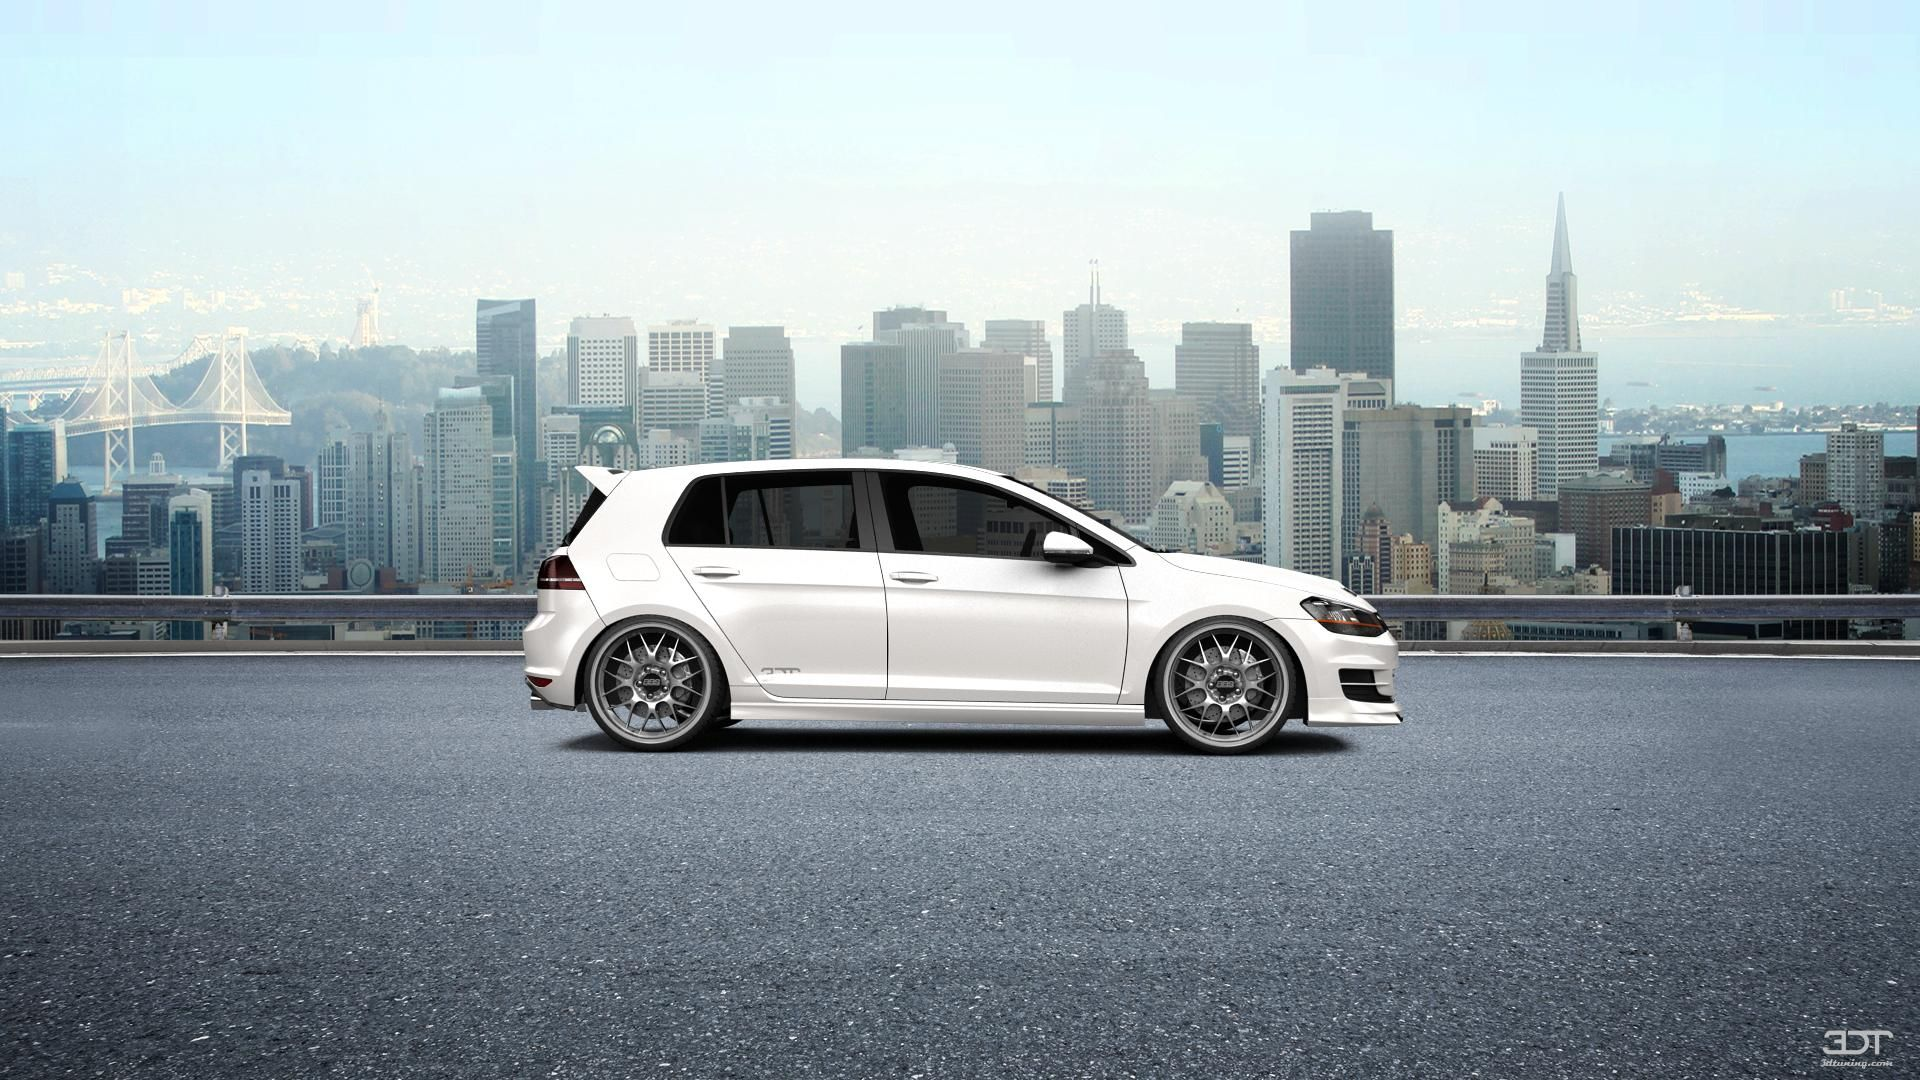 Checkout my tuning Volkswagen Golf7 2014 at 3DTuning